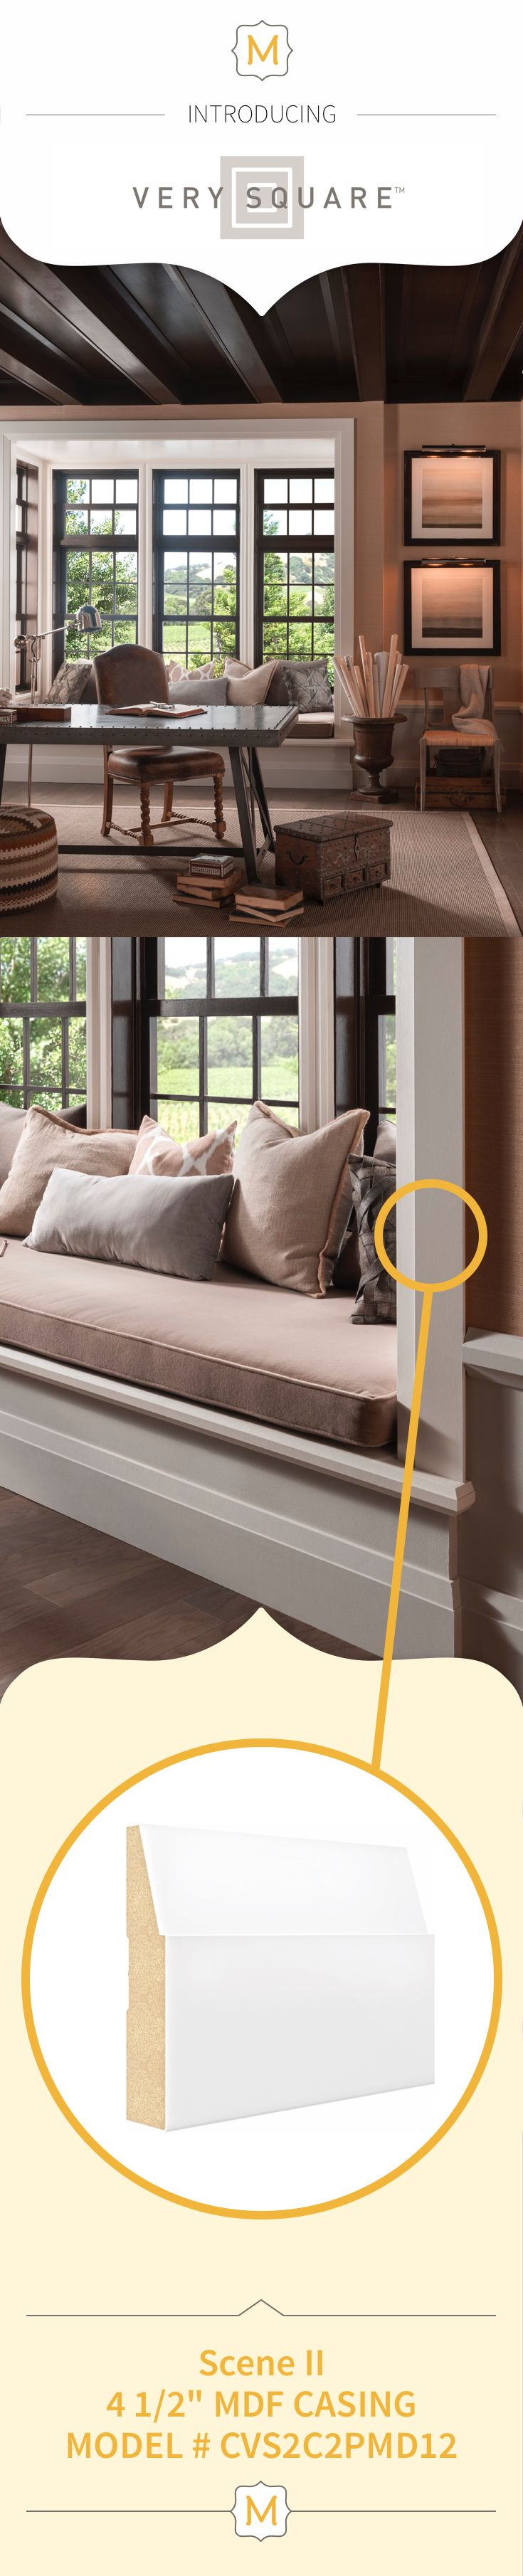 Metrie's Very Square Collection trim elements perfectly frame this dreamy window seat.